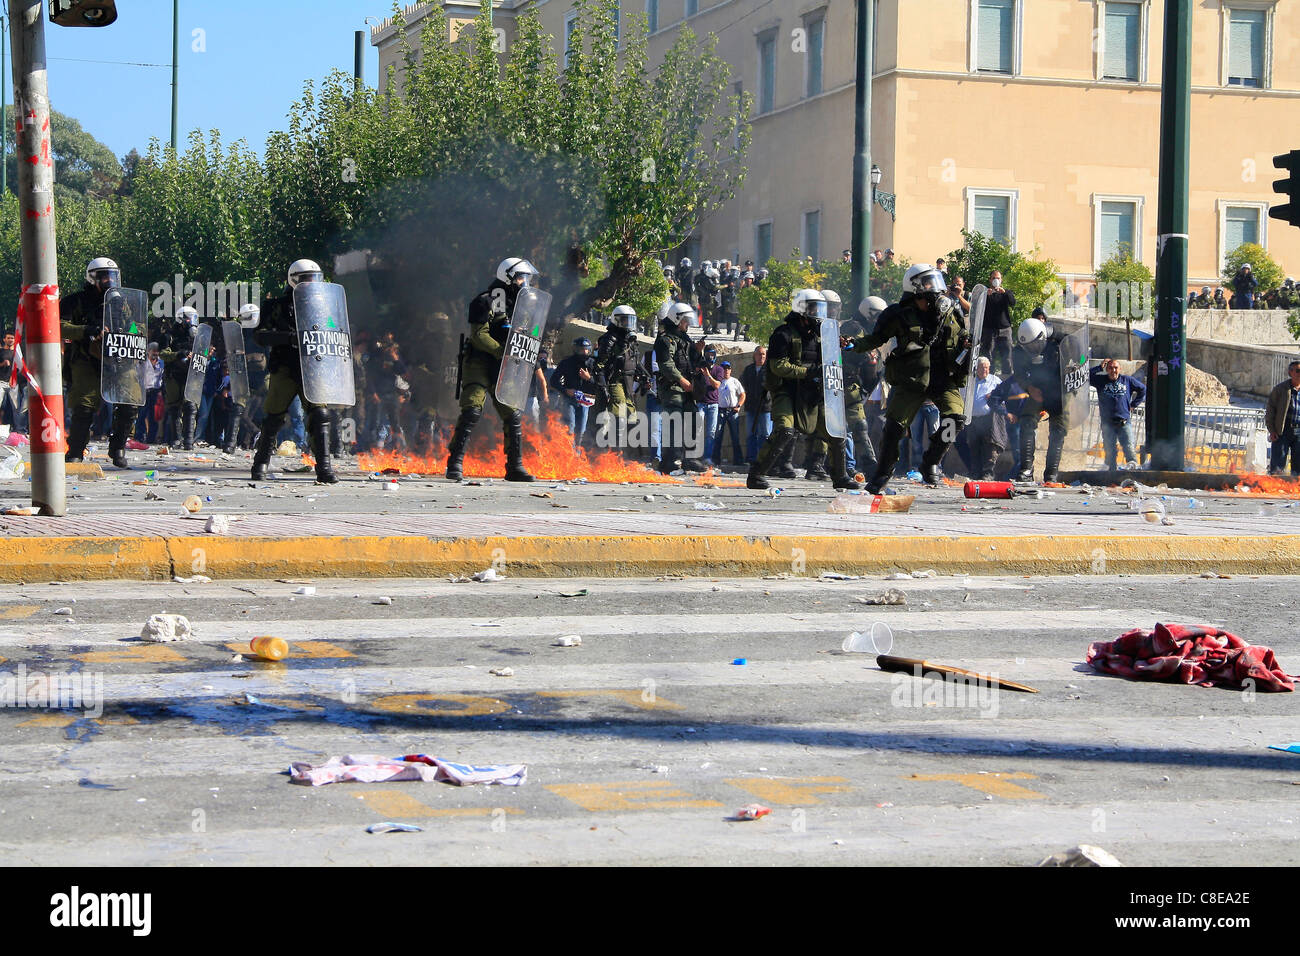 GREECE, ATHENS, SYNTAGMA SQUARE, 20/10/2011. Protests against Greek government's economic policy. Policemen - Stock Image